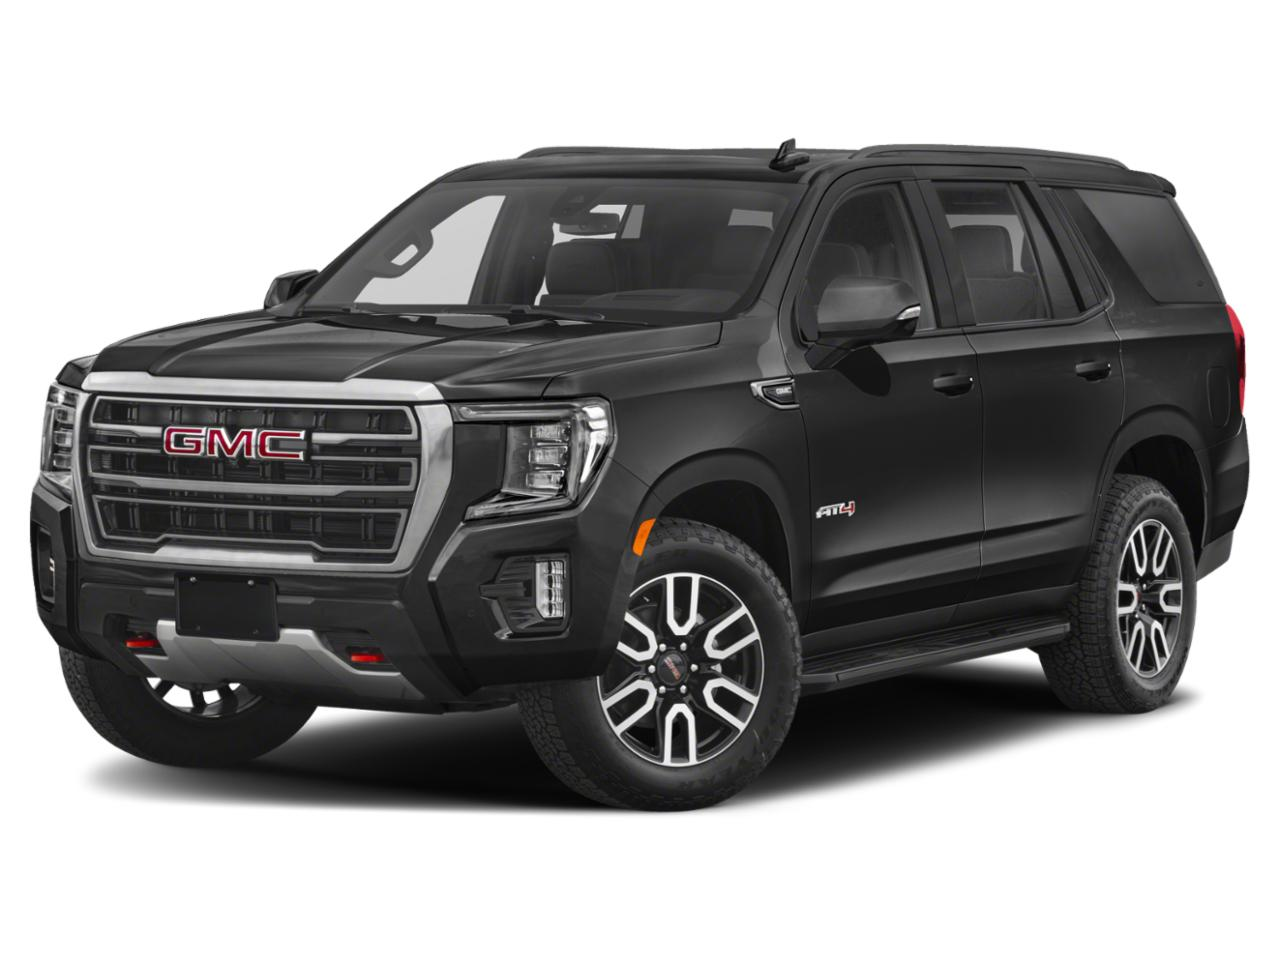 2021 GMC Yukon Vehicle Photo in Cartersville, GA 30120